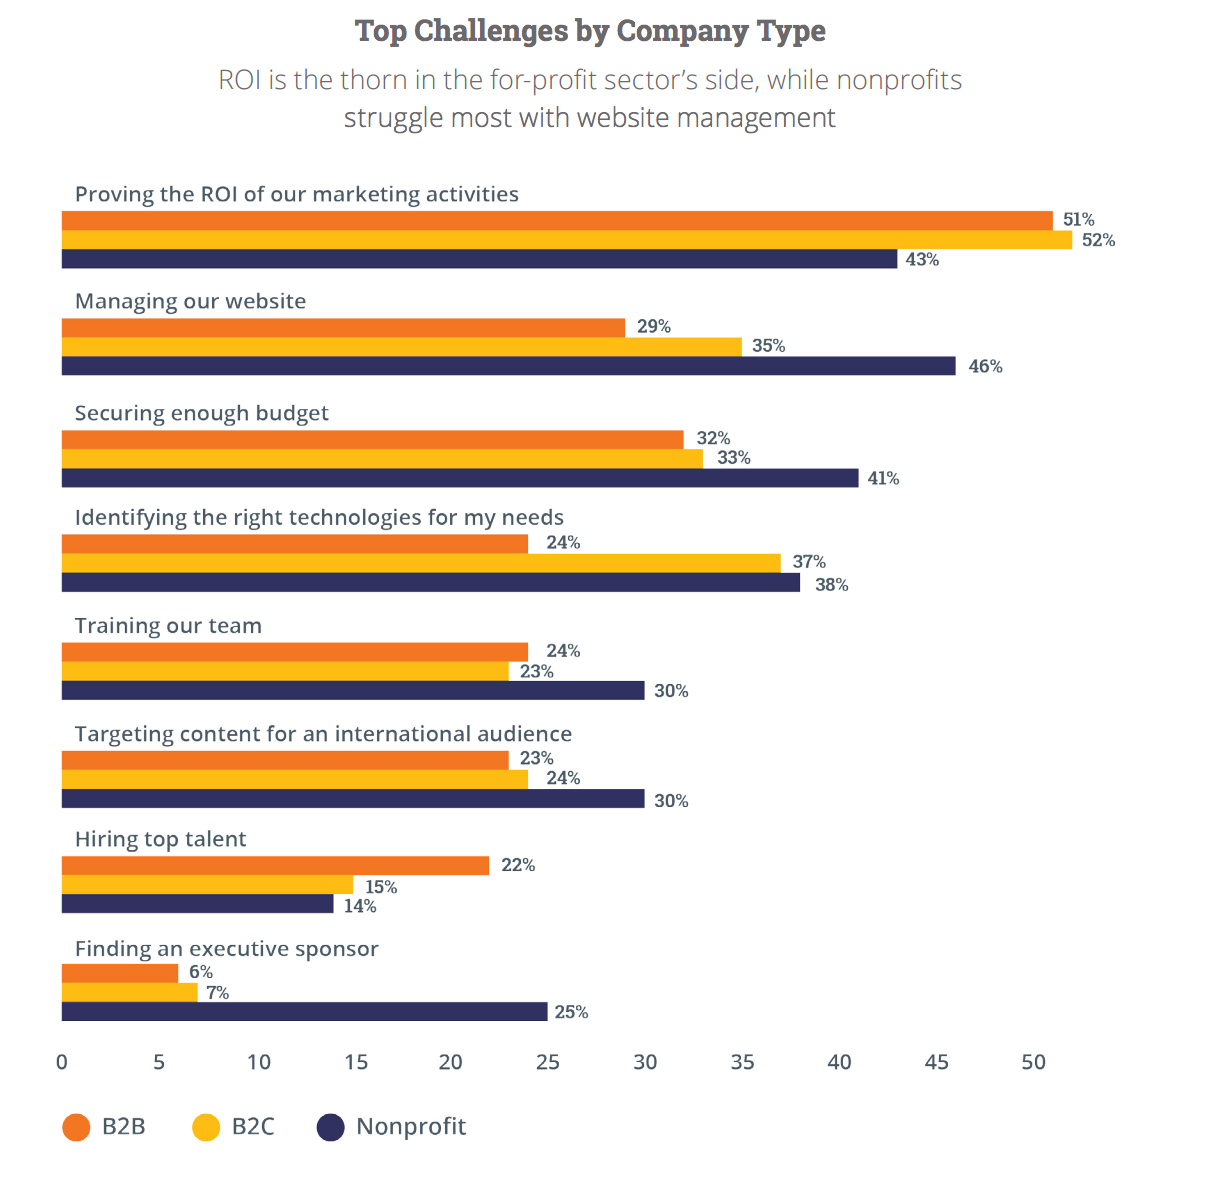 Top Challenges by Company Type ROI is the thorn in the for-profit sector's side, while nonprofits struggle most with website management